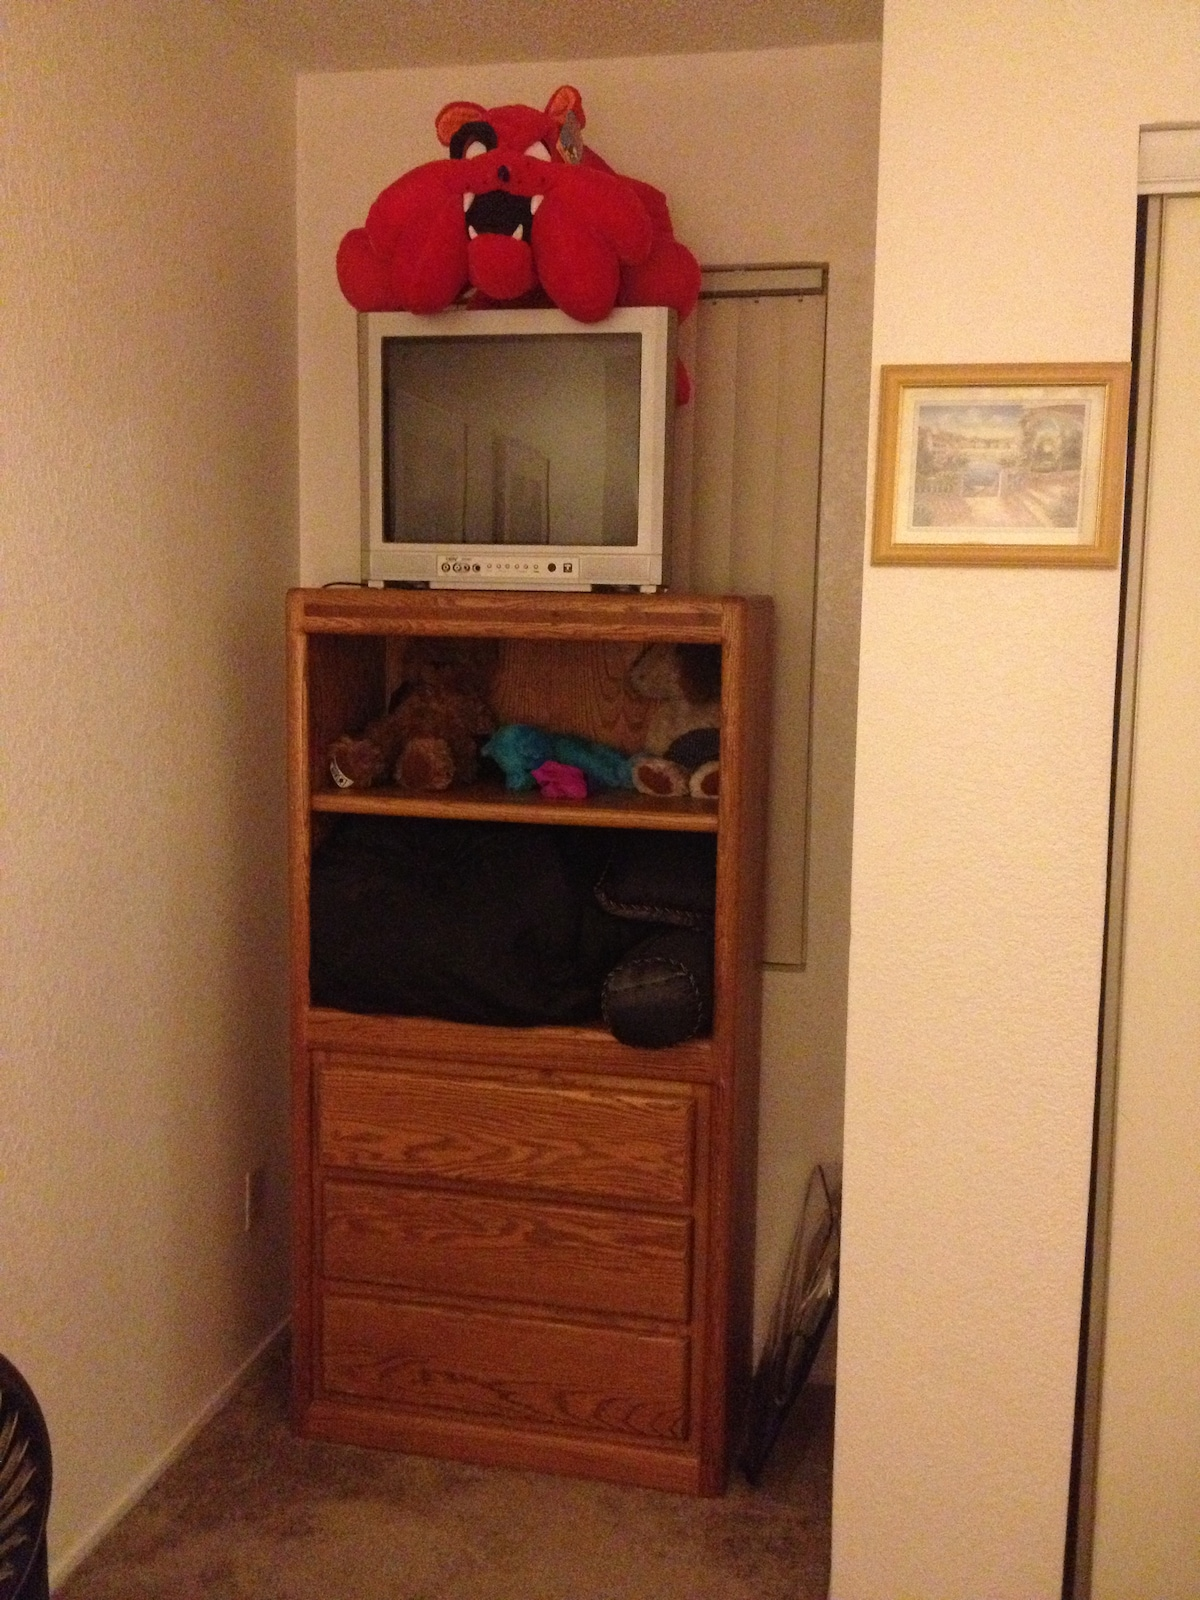 Dresser-will be cleaned out at arrival